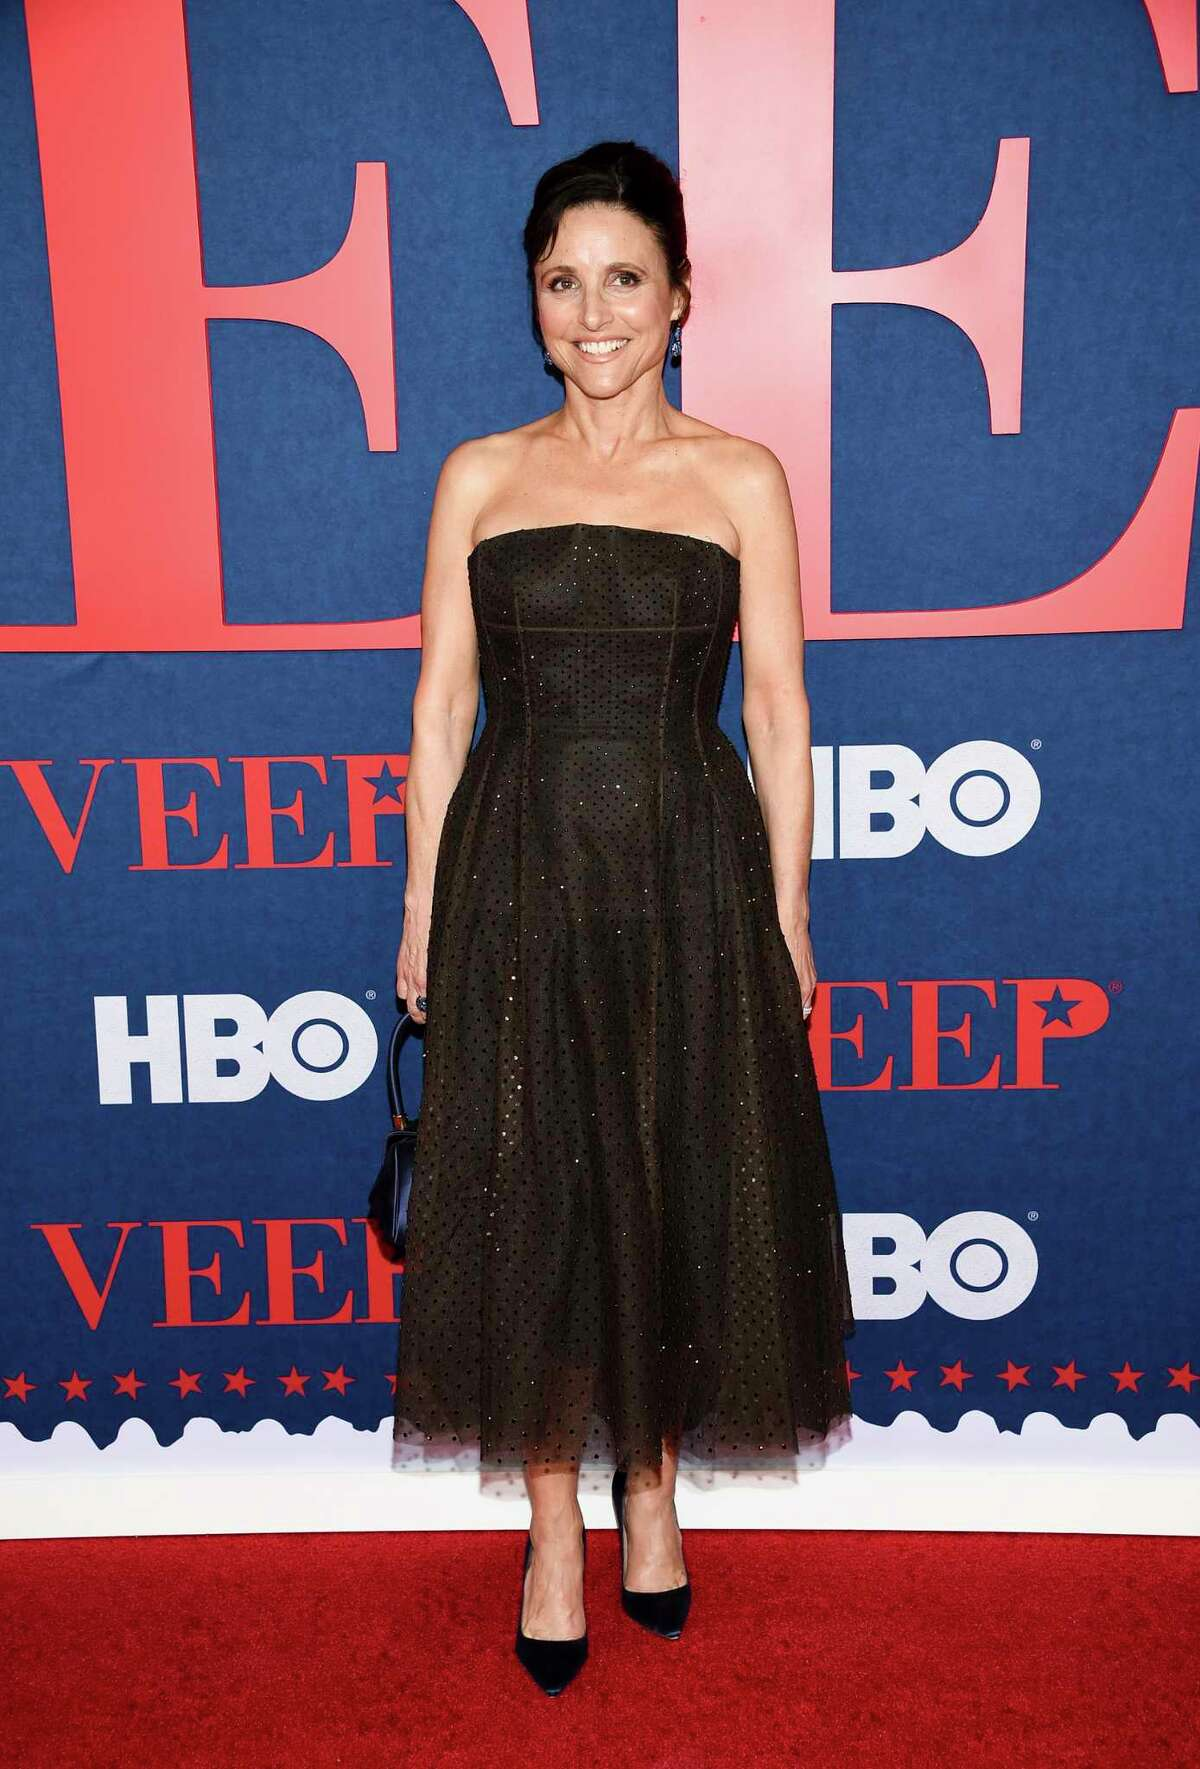 Actress and executive producer Julia Louis-Dreyfus attends the premiere of the final season of HBO's